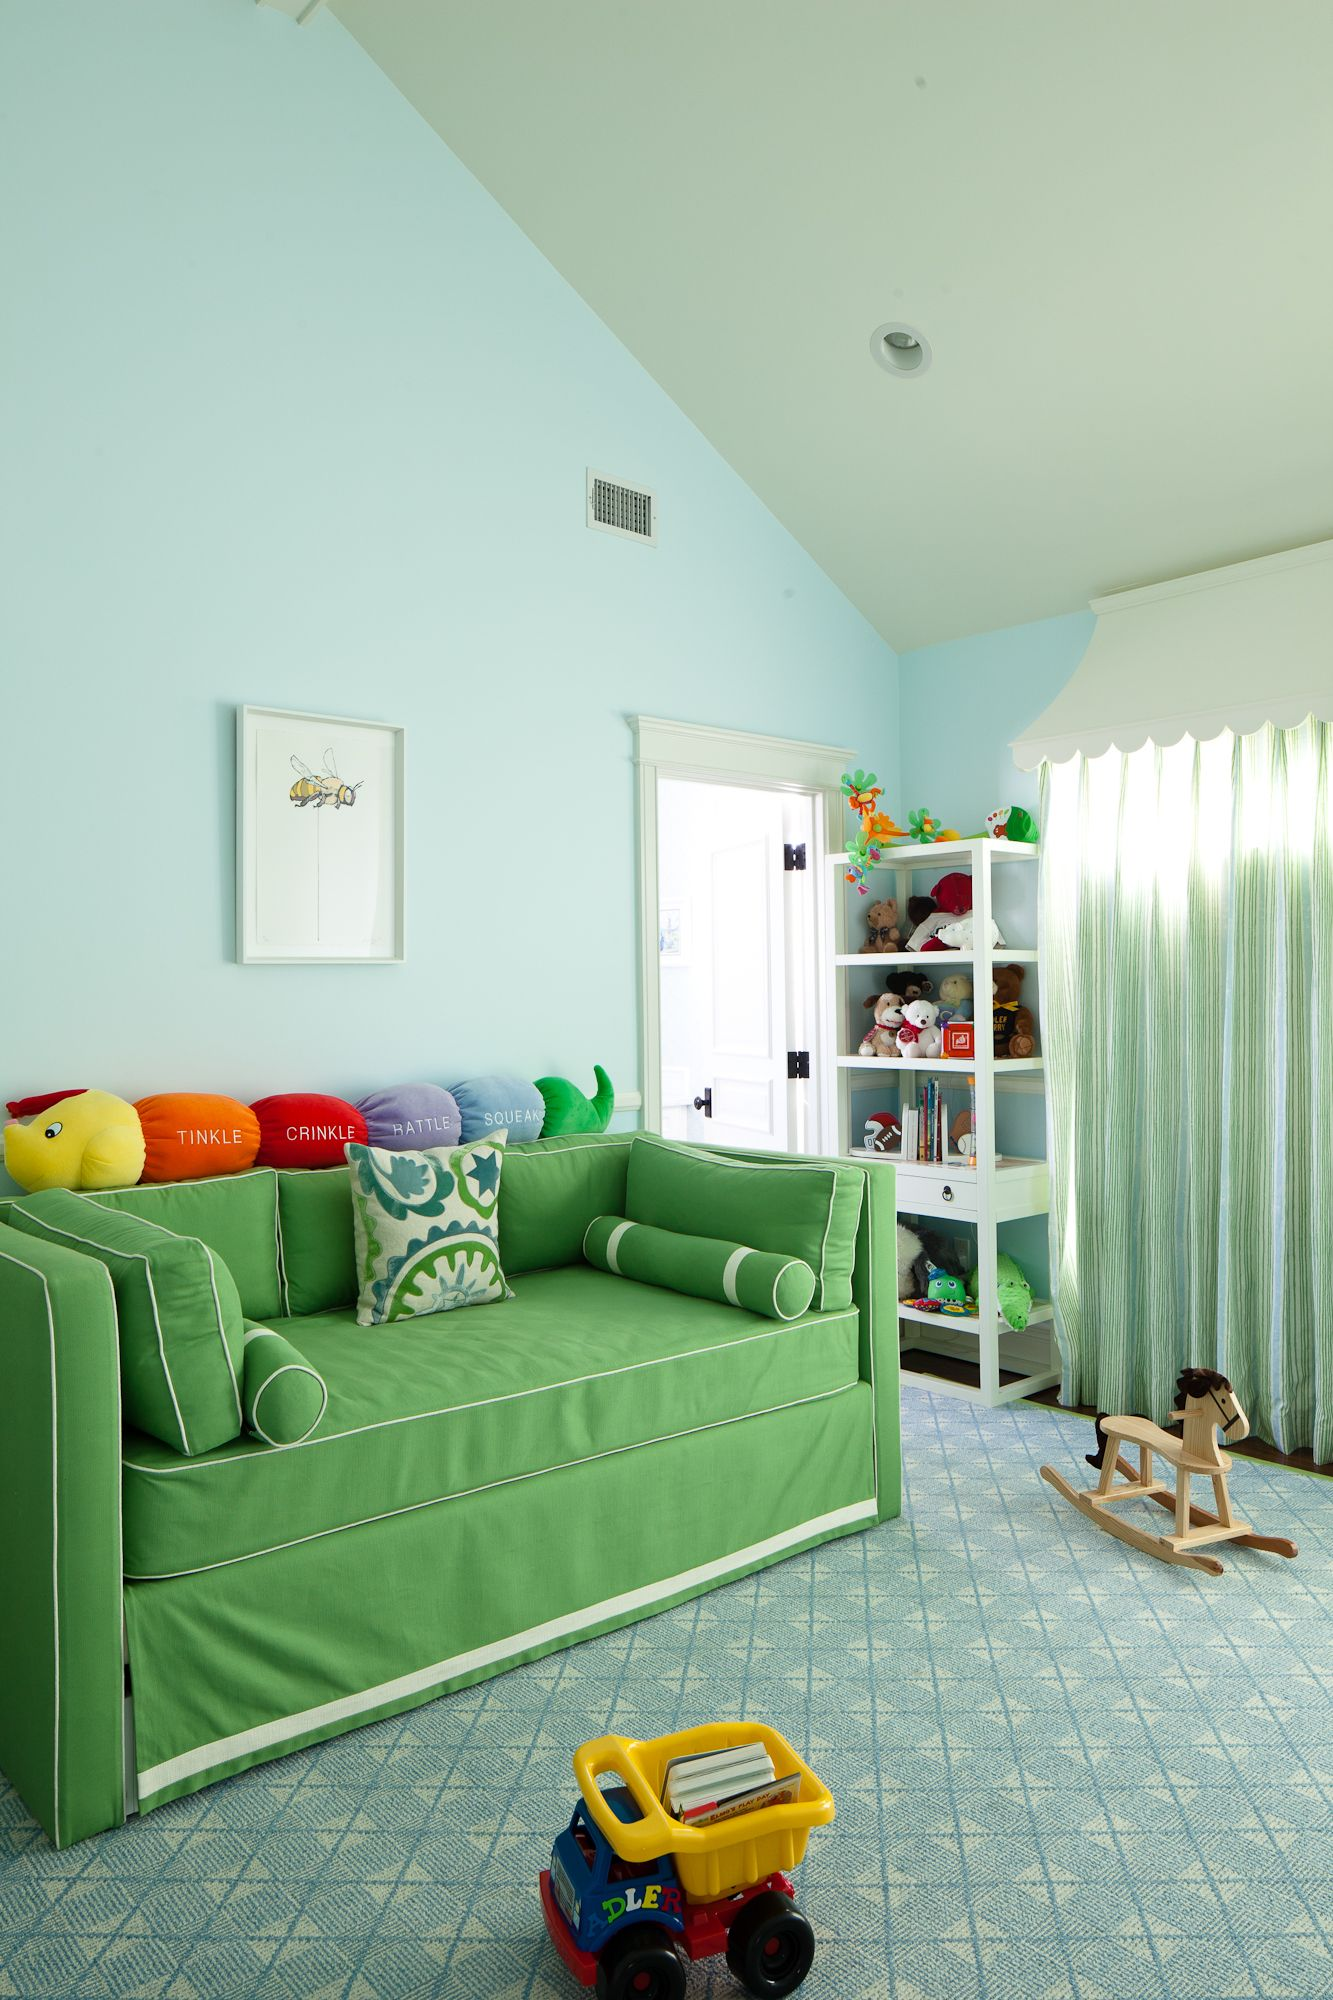 Upholstered Daybeds Room Interior Kids Room